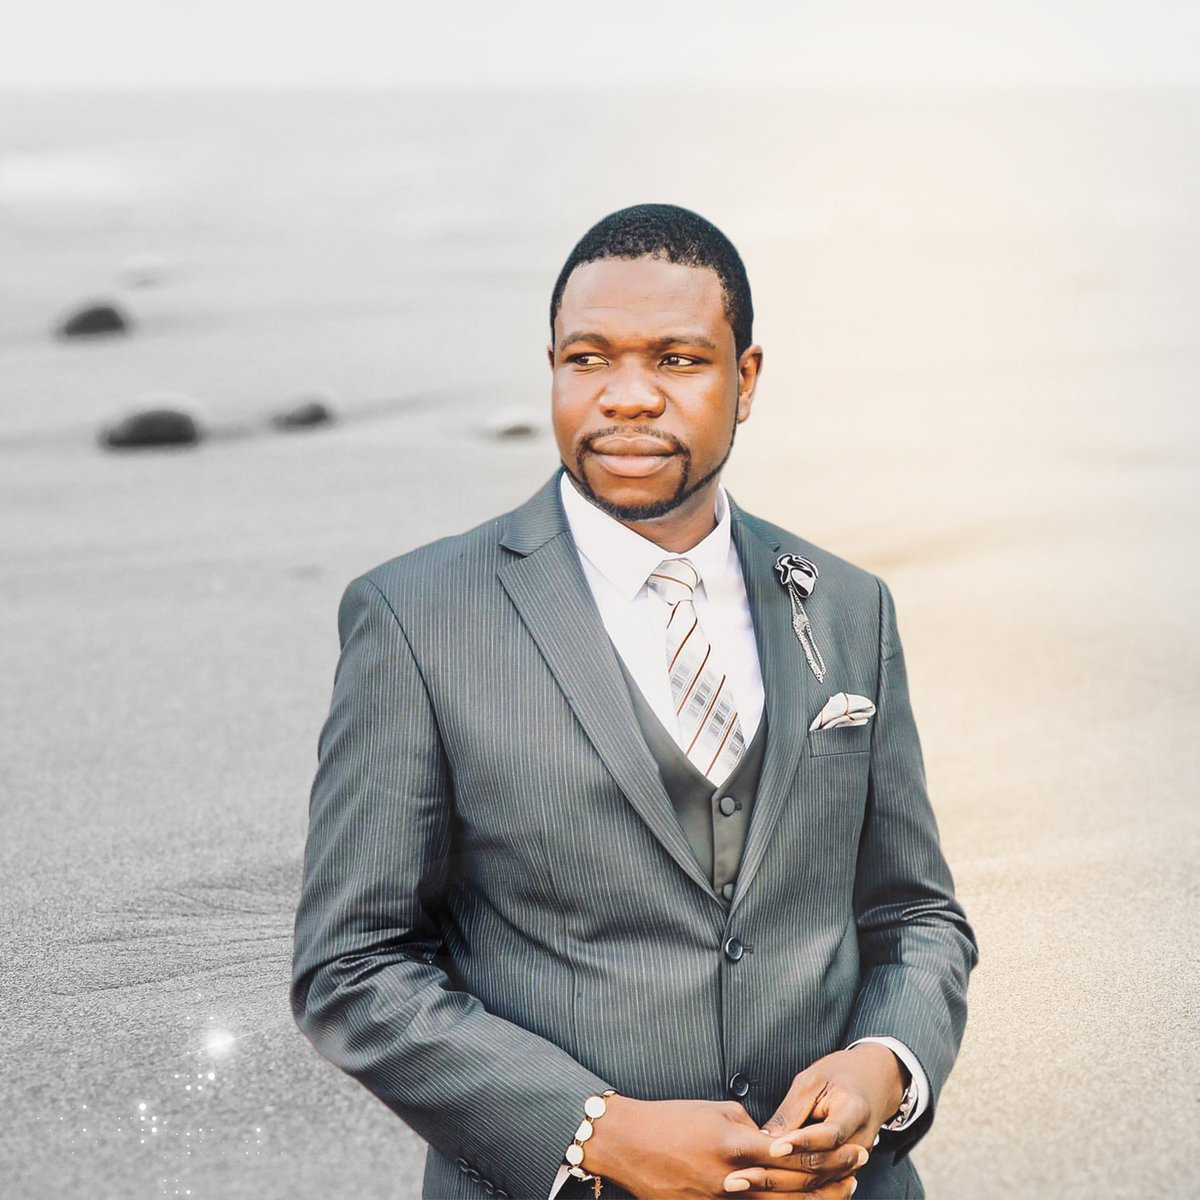 What teaching or sermon from Prophet Magaya that changed your life? https://t.co/JsYWsLuC8D